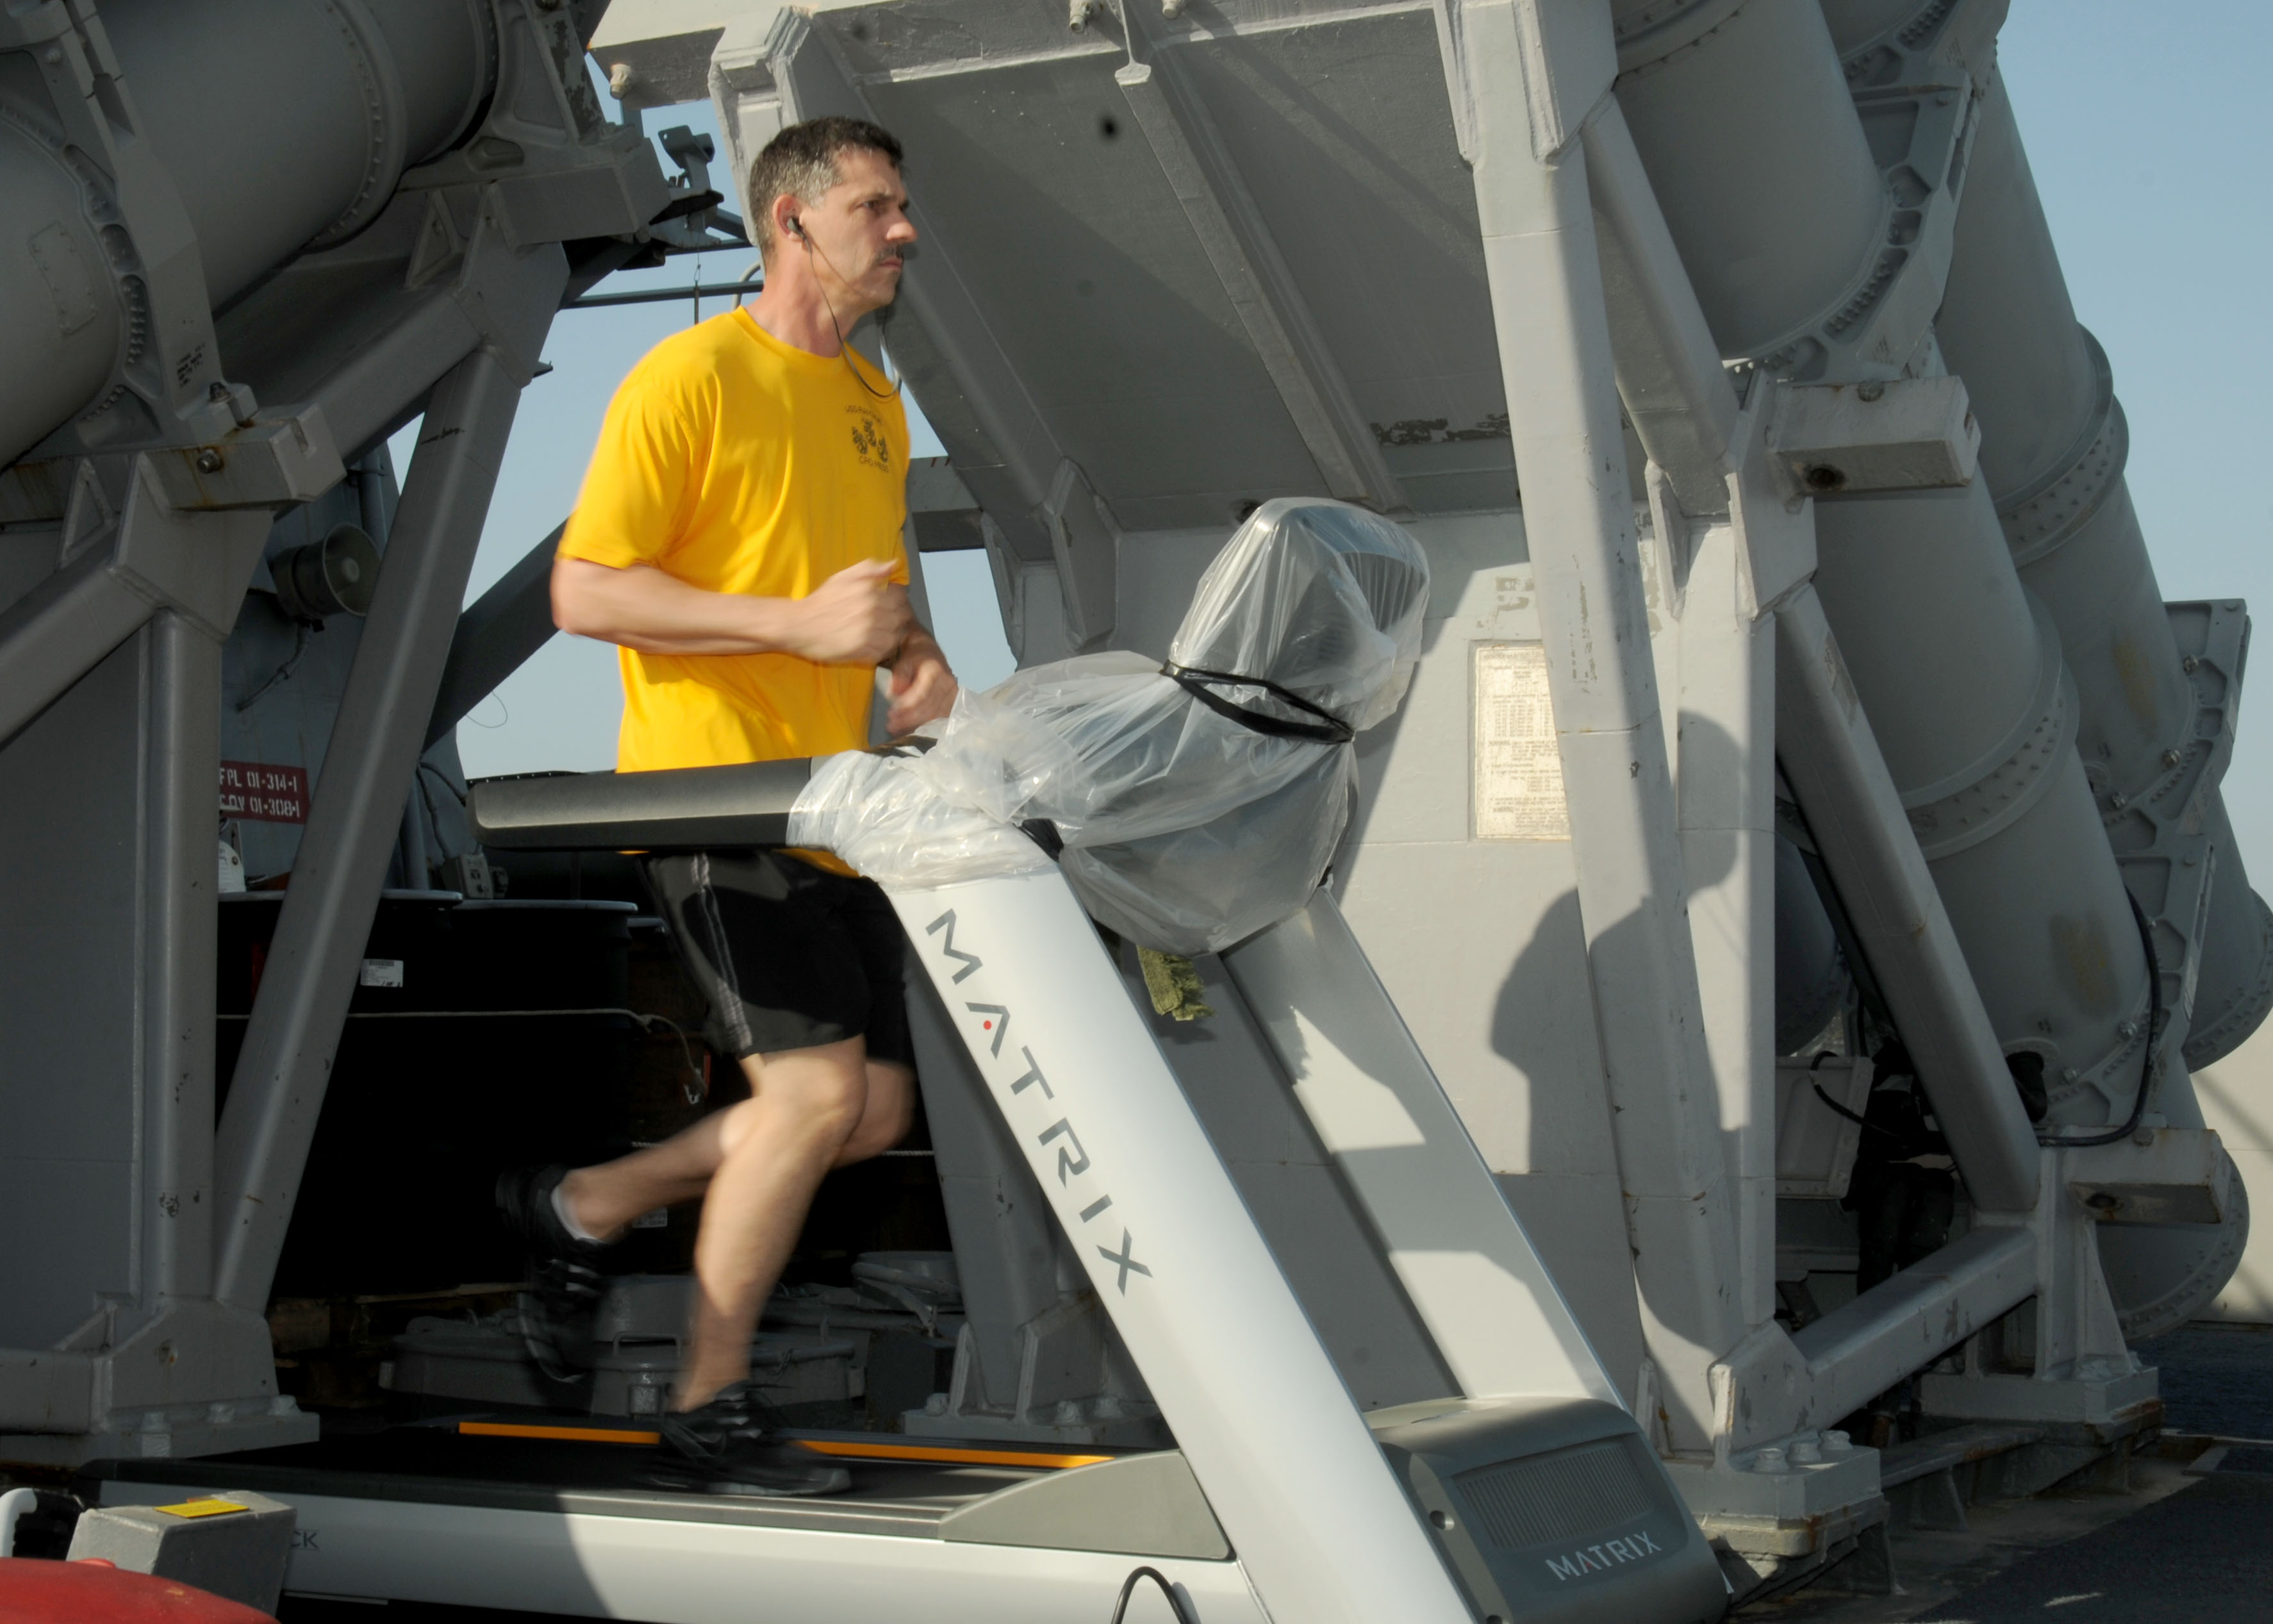 New PFA rules allow sailors to save their careers